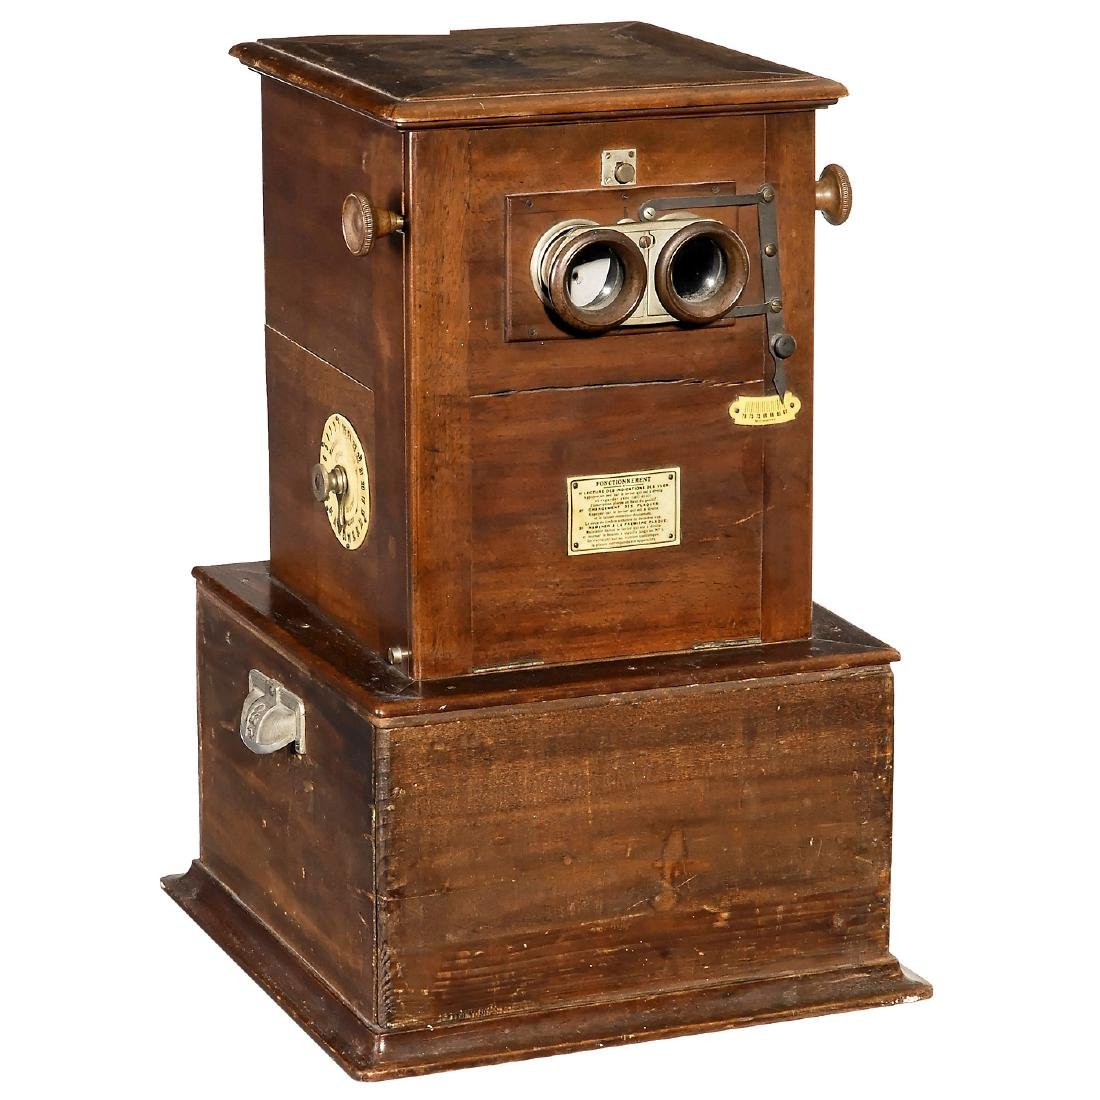 Le Taxiphote Table Stereo Viewer, c. 1910